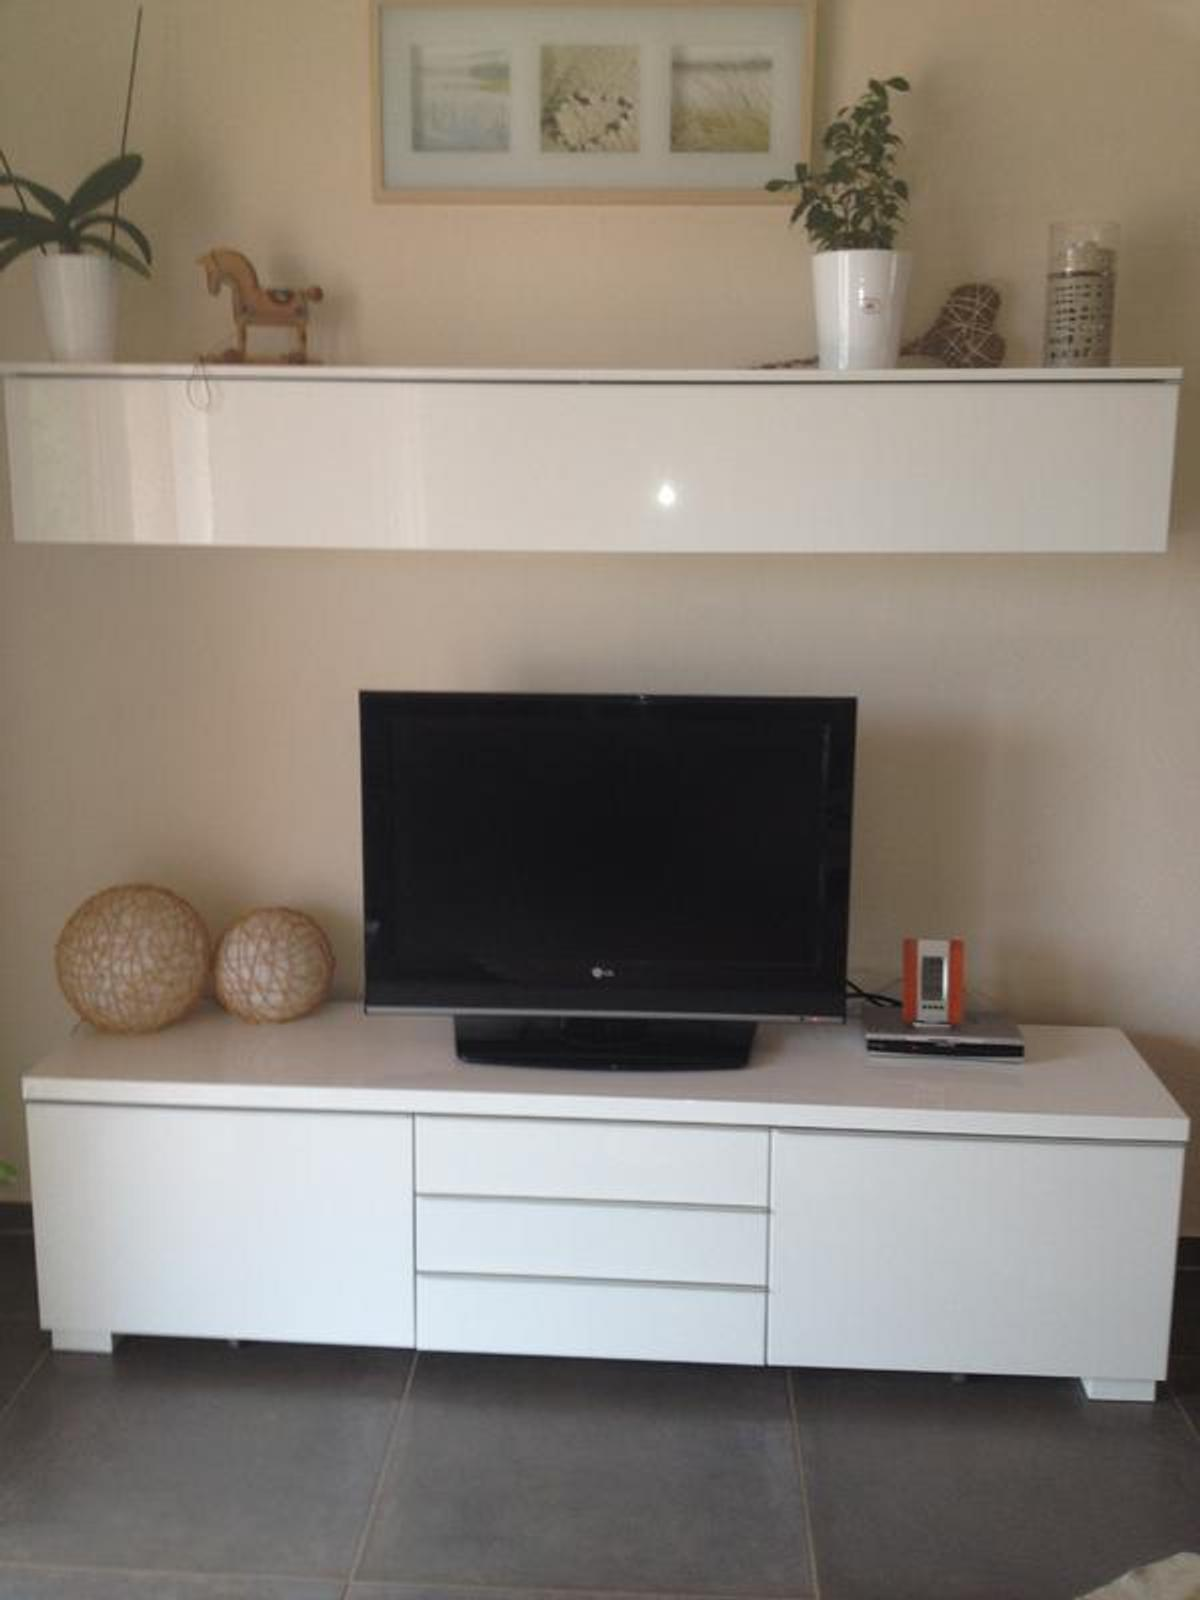 Marvelous Ikea Besta Burs Tv Bench And Dvd Wall Storage In S30 Andrewgaddart Wooden Chair Designs For Living Room Andrewgaddartcom